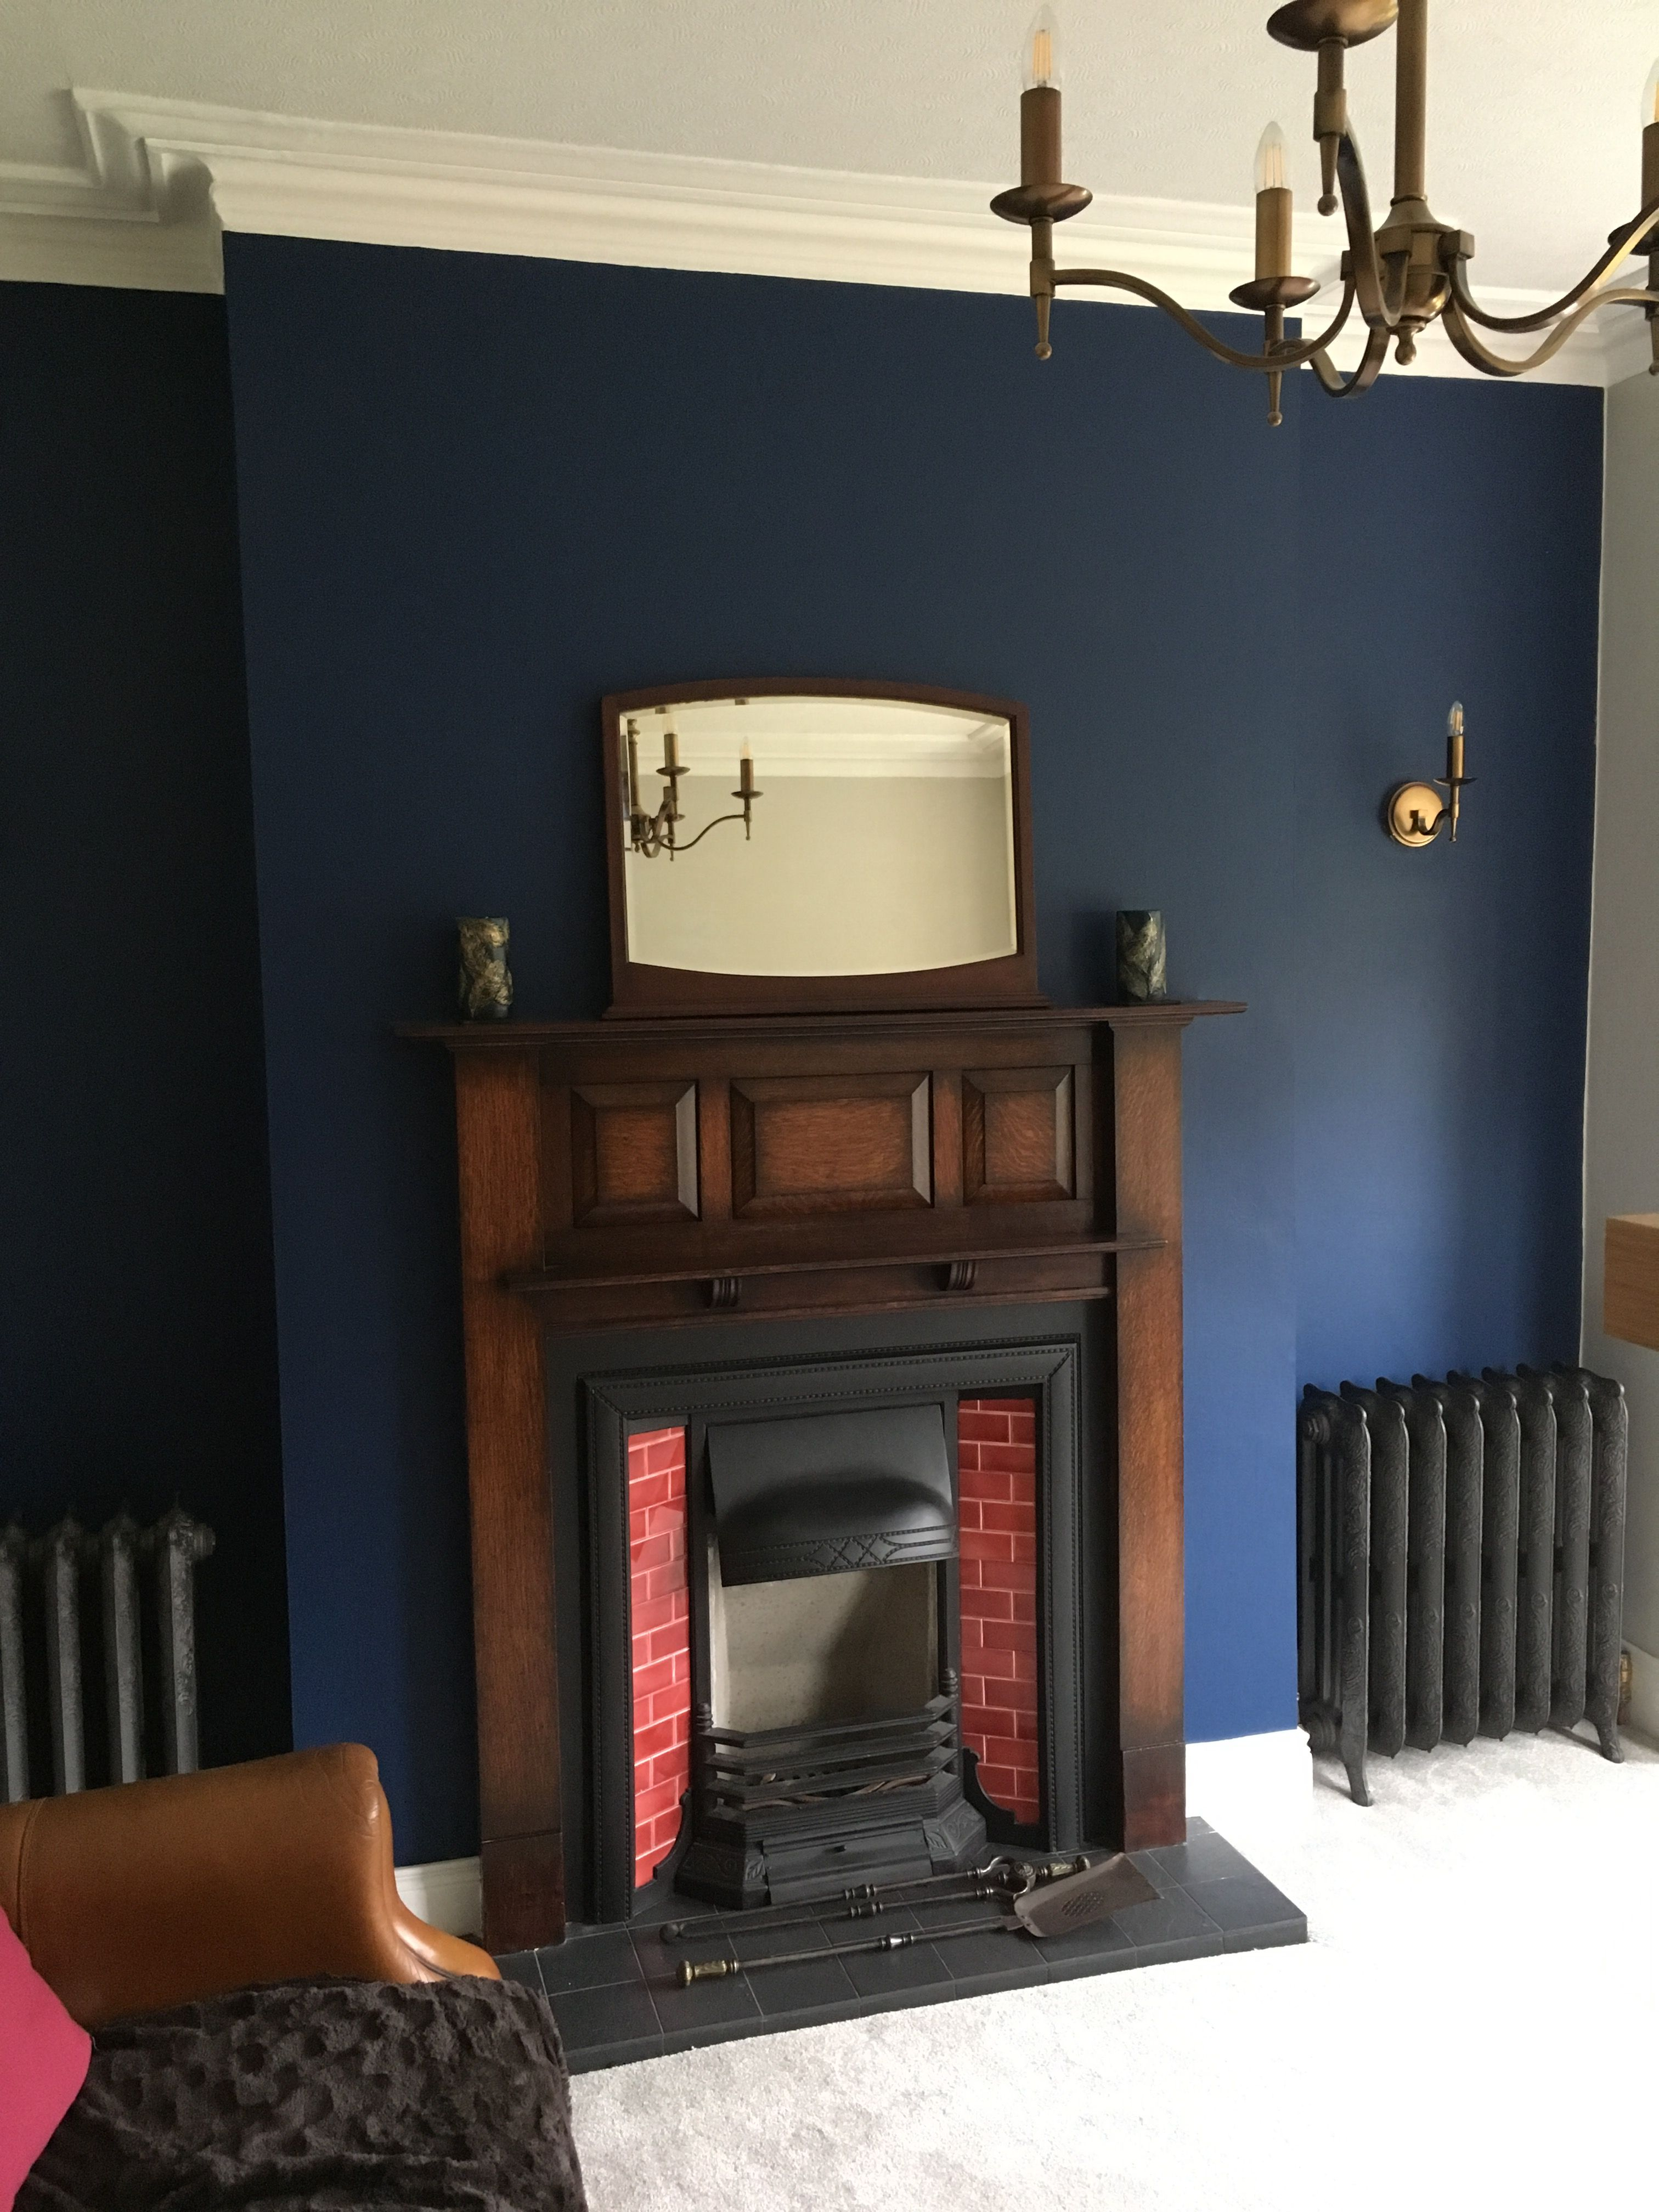 Dulux Sapphire Salute With Mahogany 1920 S Fireplace And Reproduction Cast Iron Radiators Feature Wall Living Room Blue Living Room Living Room Remodel